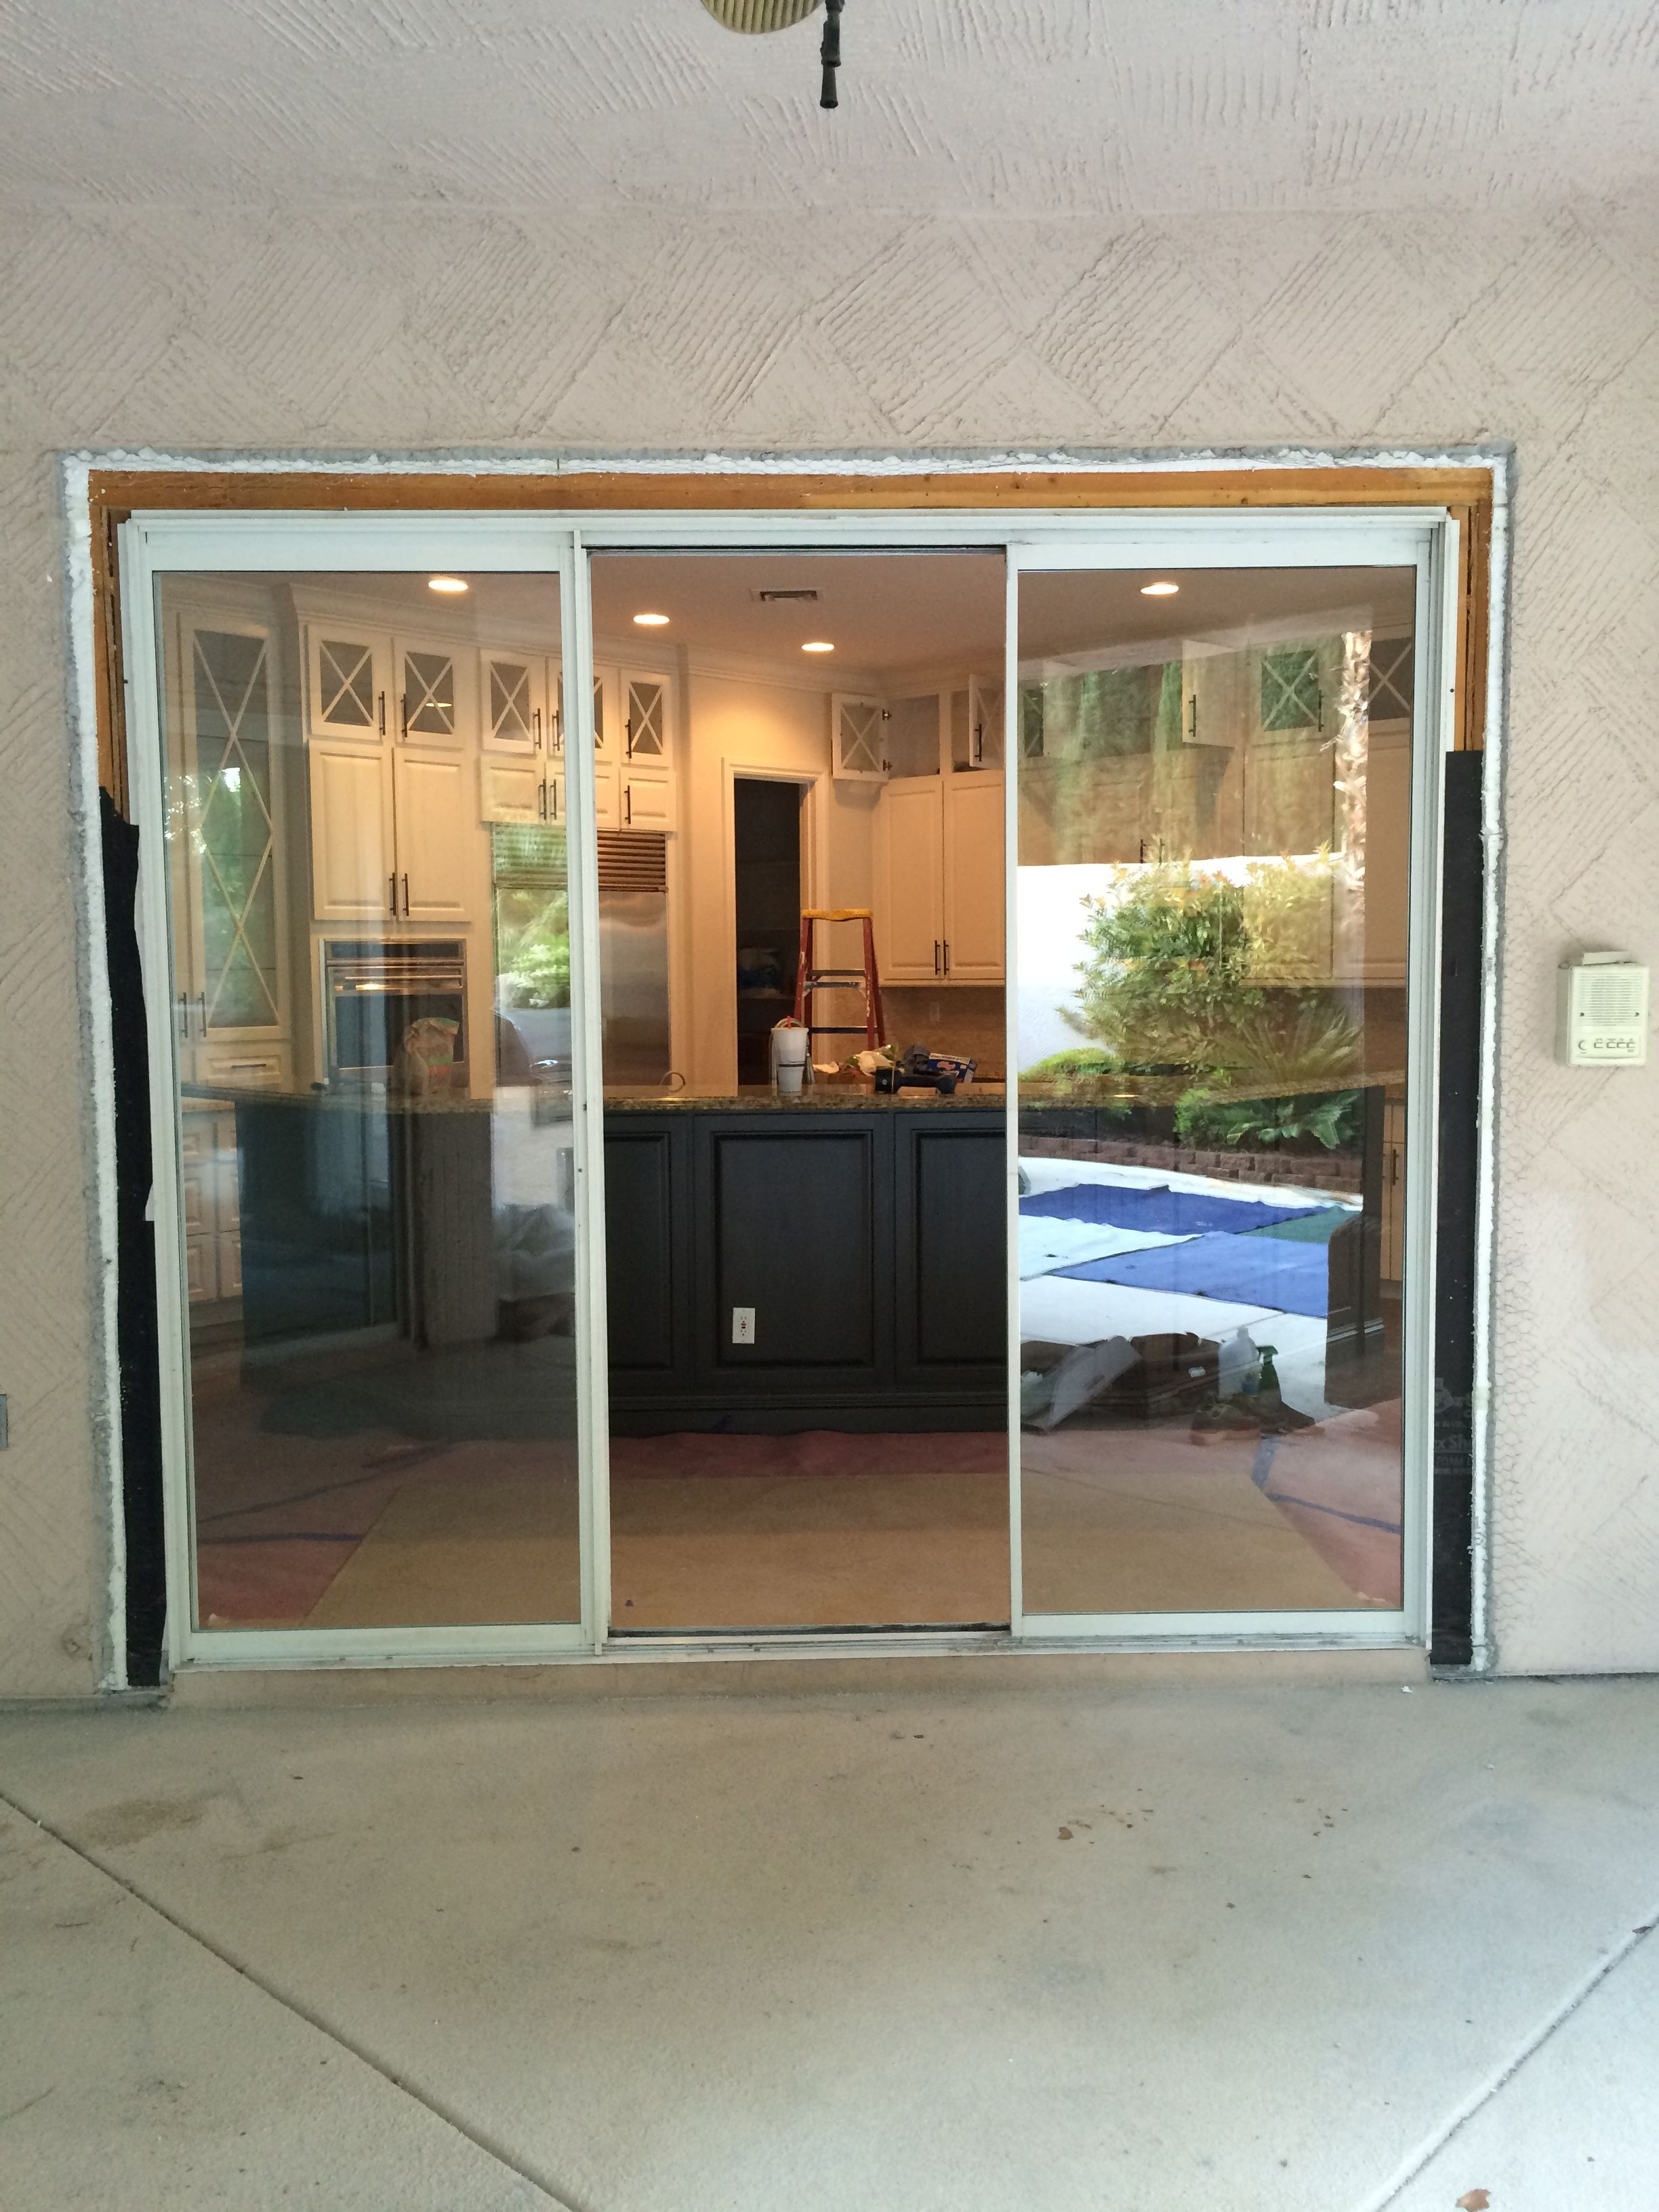 Three openings 9 8 and 5 foot wide 8 foot tall we for Wide sliding patio doors